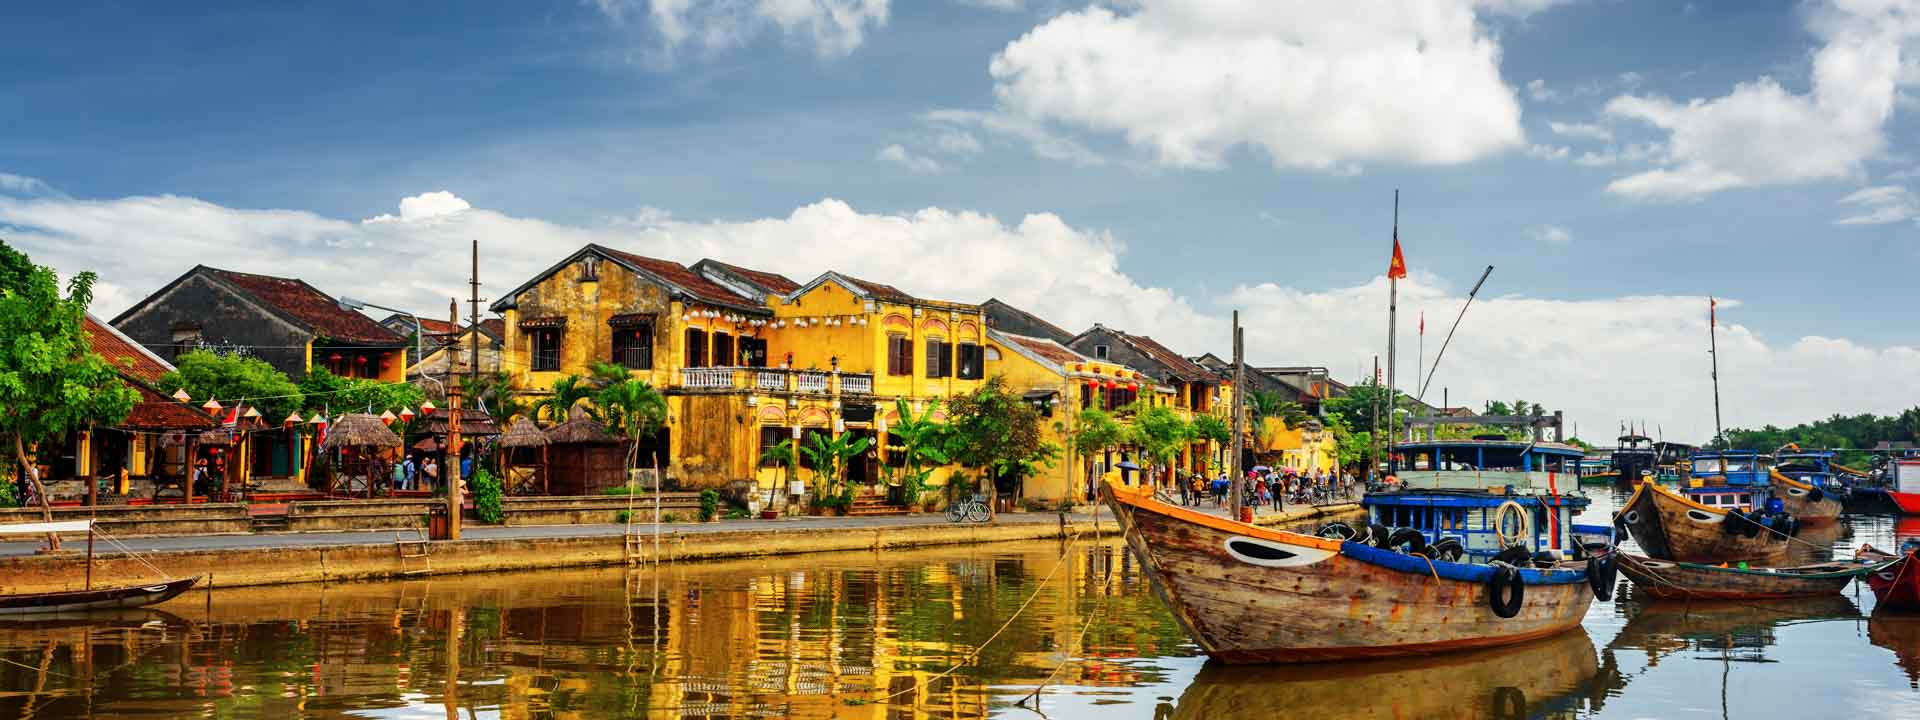 Trekking Tour in Vietnam Cambodia 23 days